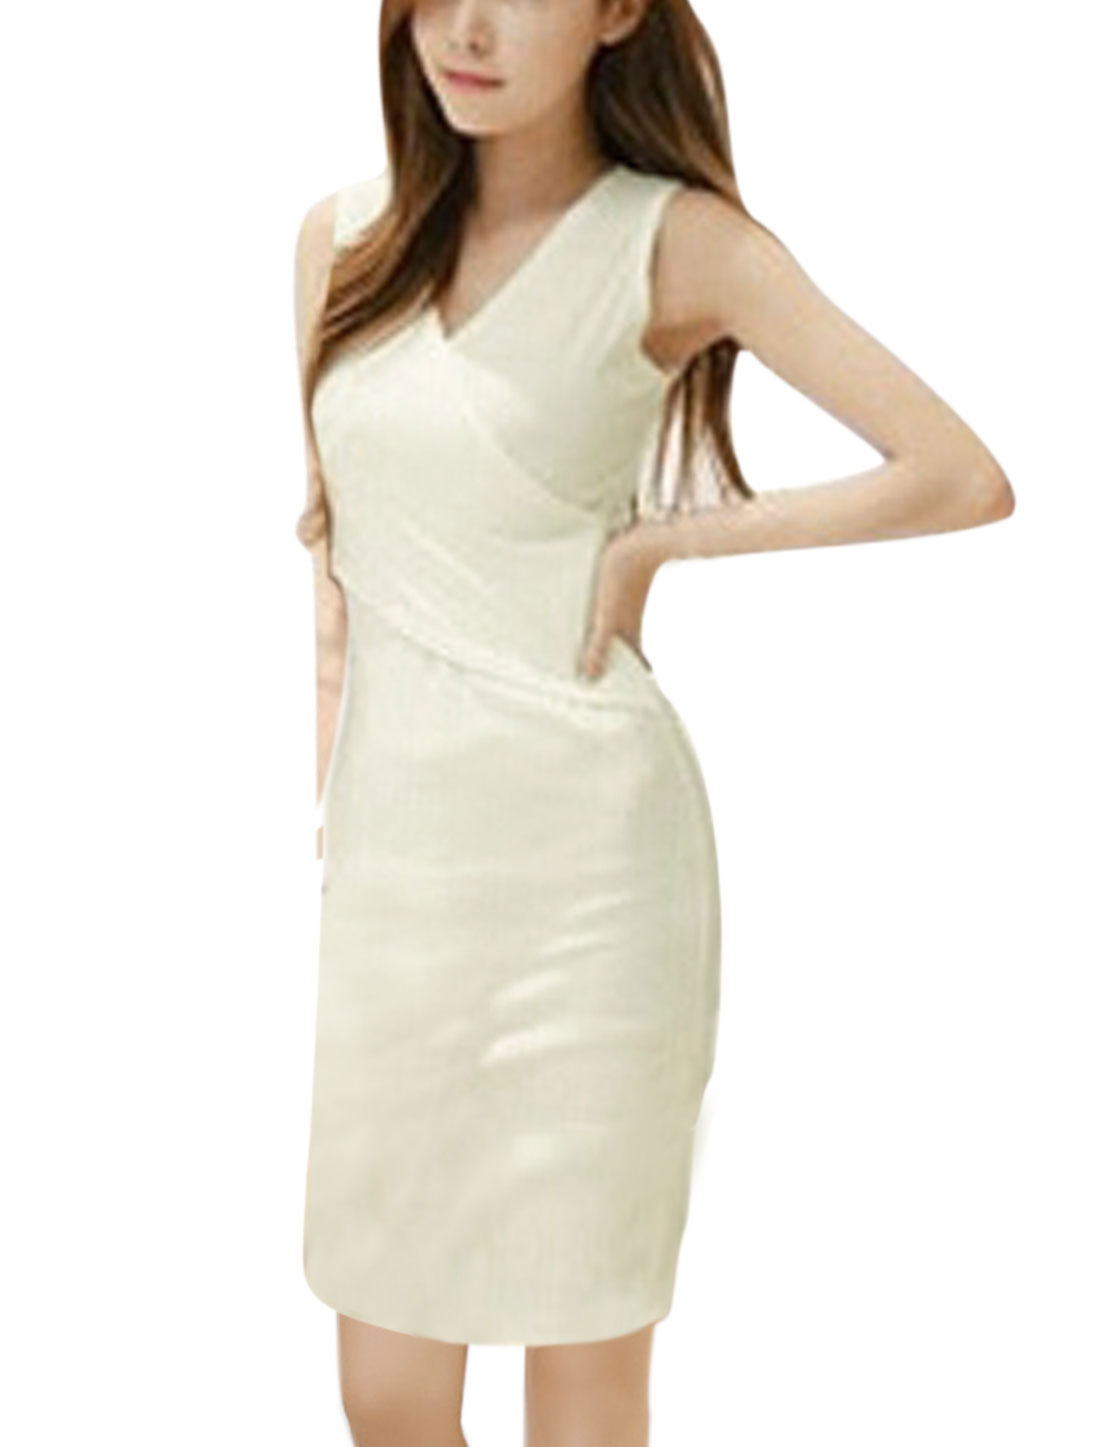 Women Crossover V Neck Sleeveless Unlined Sheath Dress White S